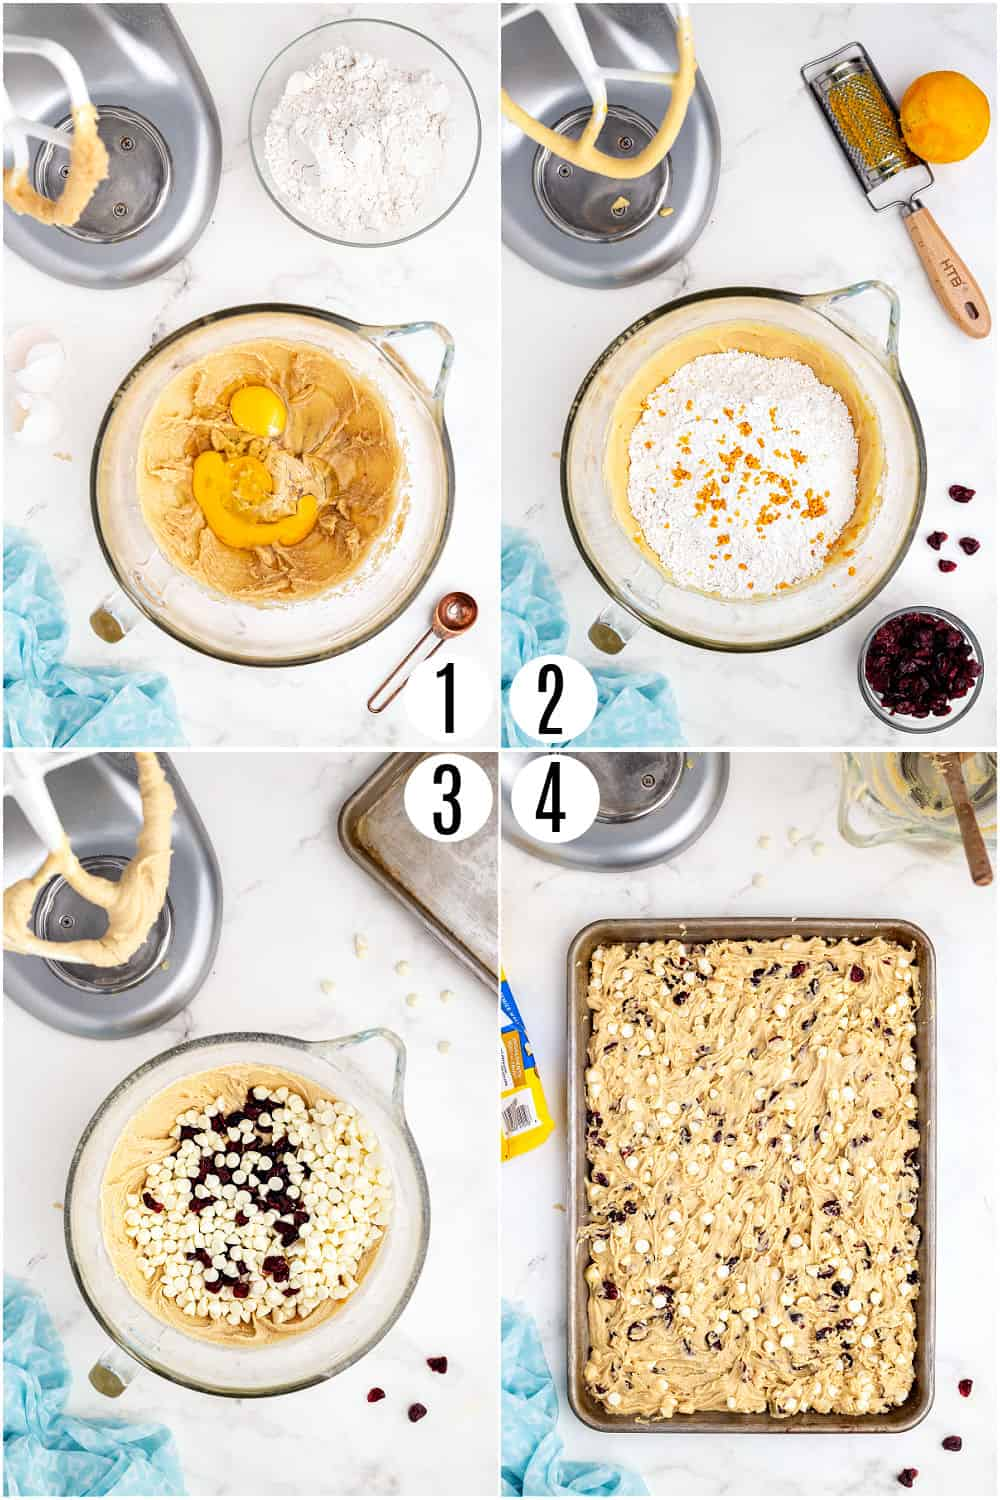 Step by step photos showing how to make cookies bars with cranberries.